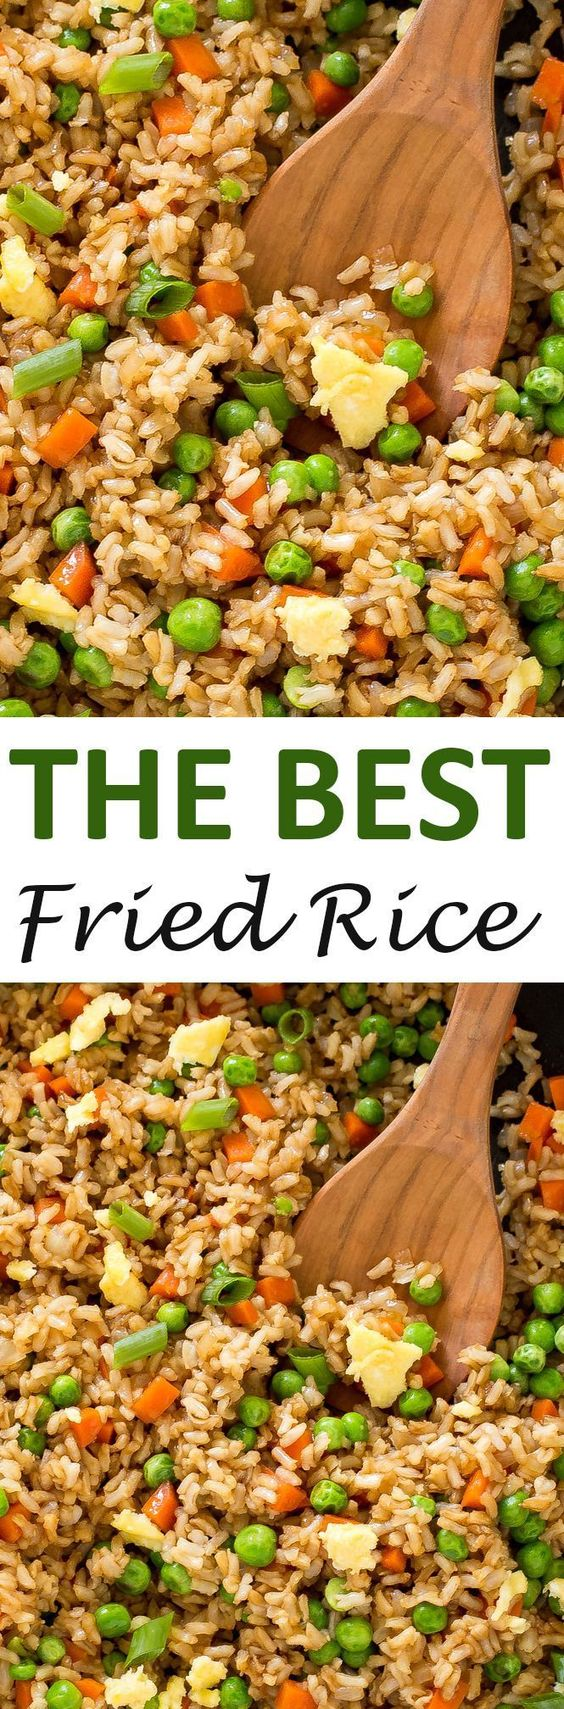 The BEST Fried Rice. This fried rice is loaded with veggies and only takes 20 minutes to make! | chefsavvy.com #recipe #fried #rice #side #Chinese #takeout: